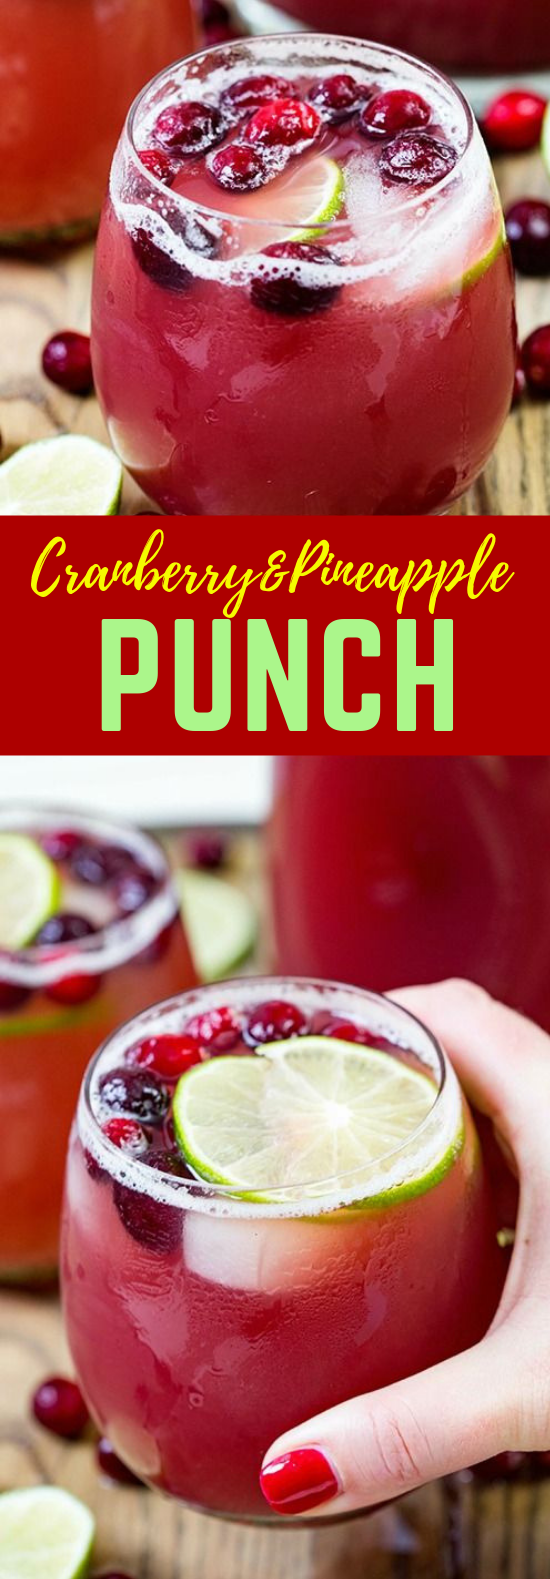 CRANBERRY PINEAPPLE PUNCH #Drink #Punch